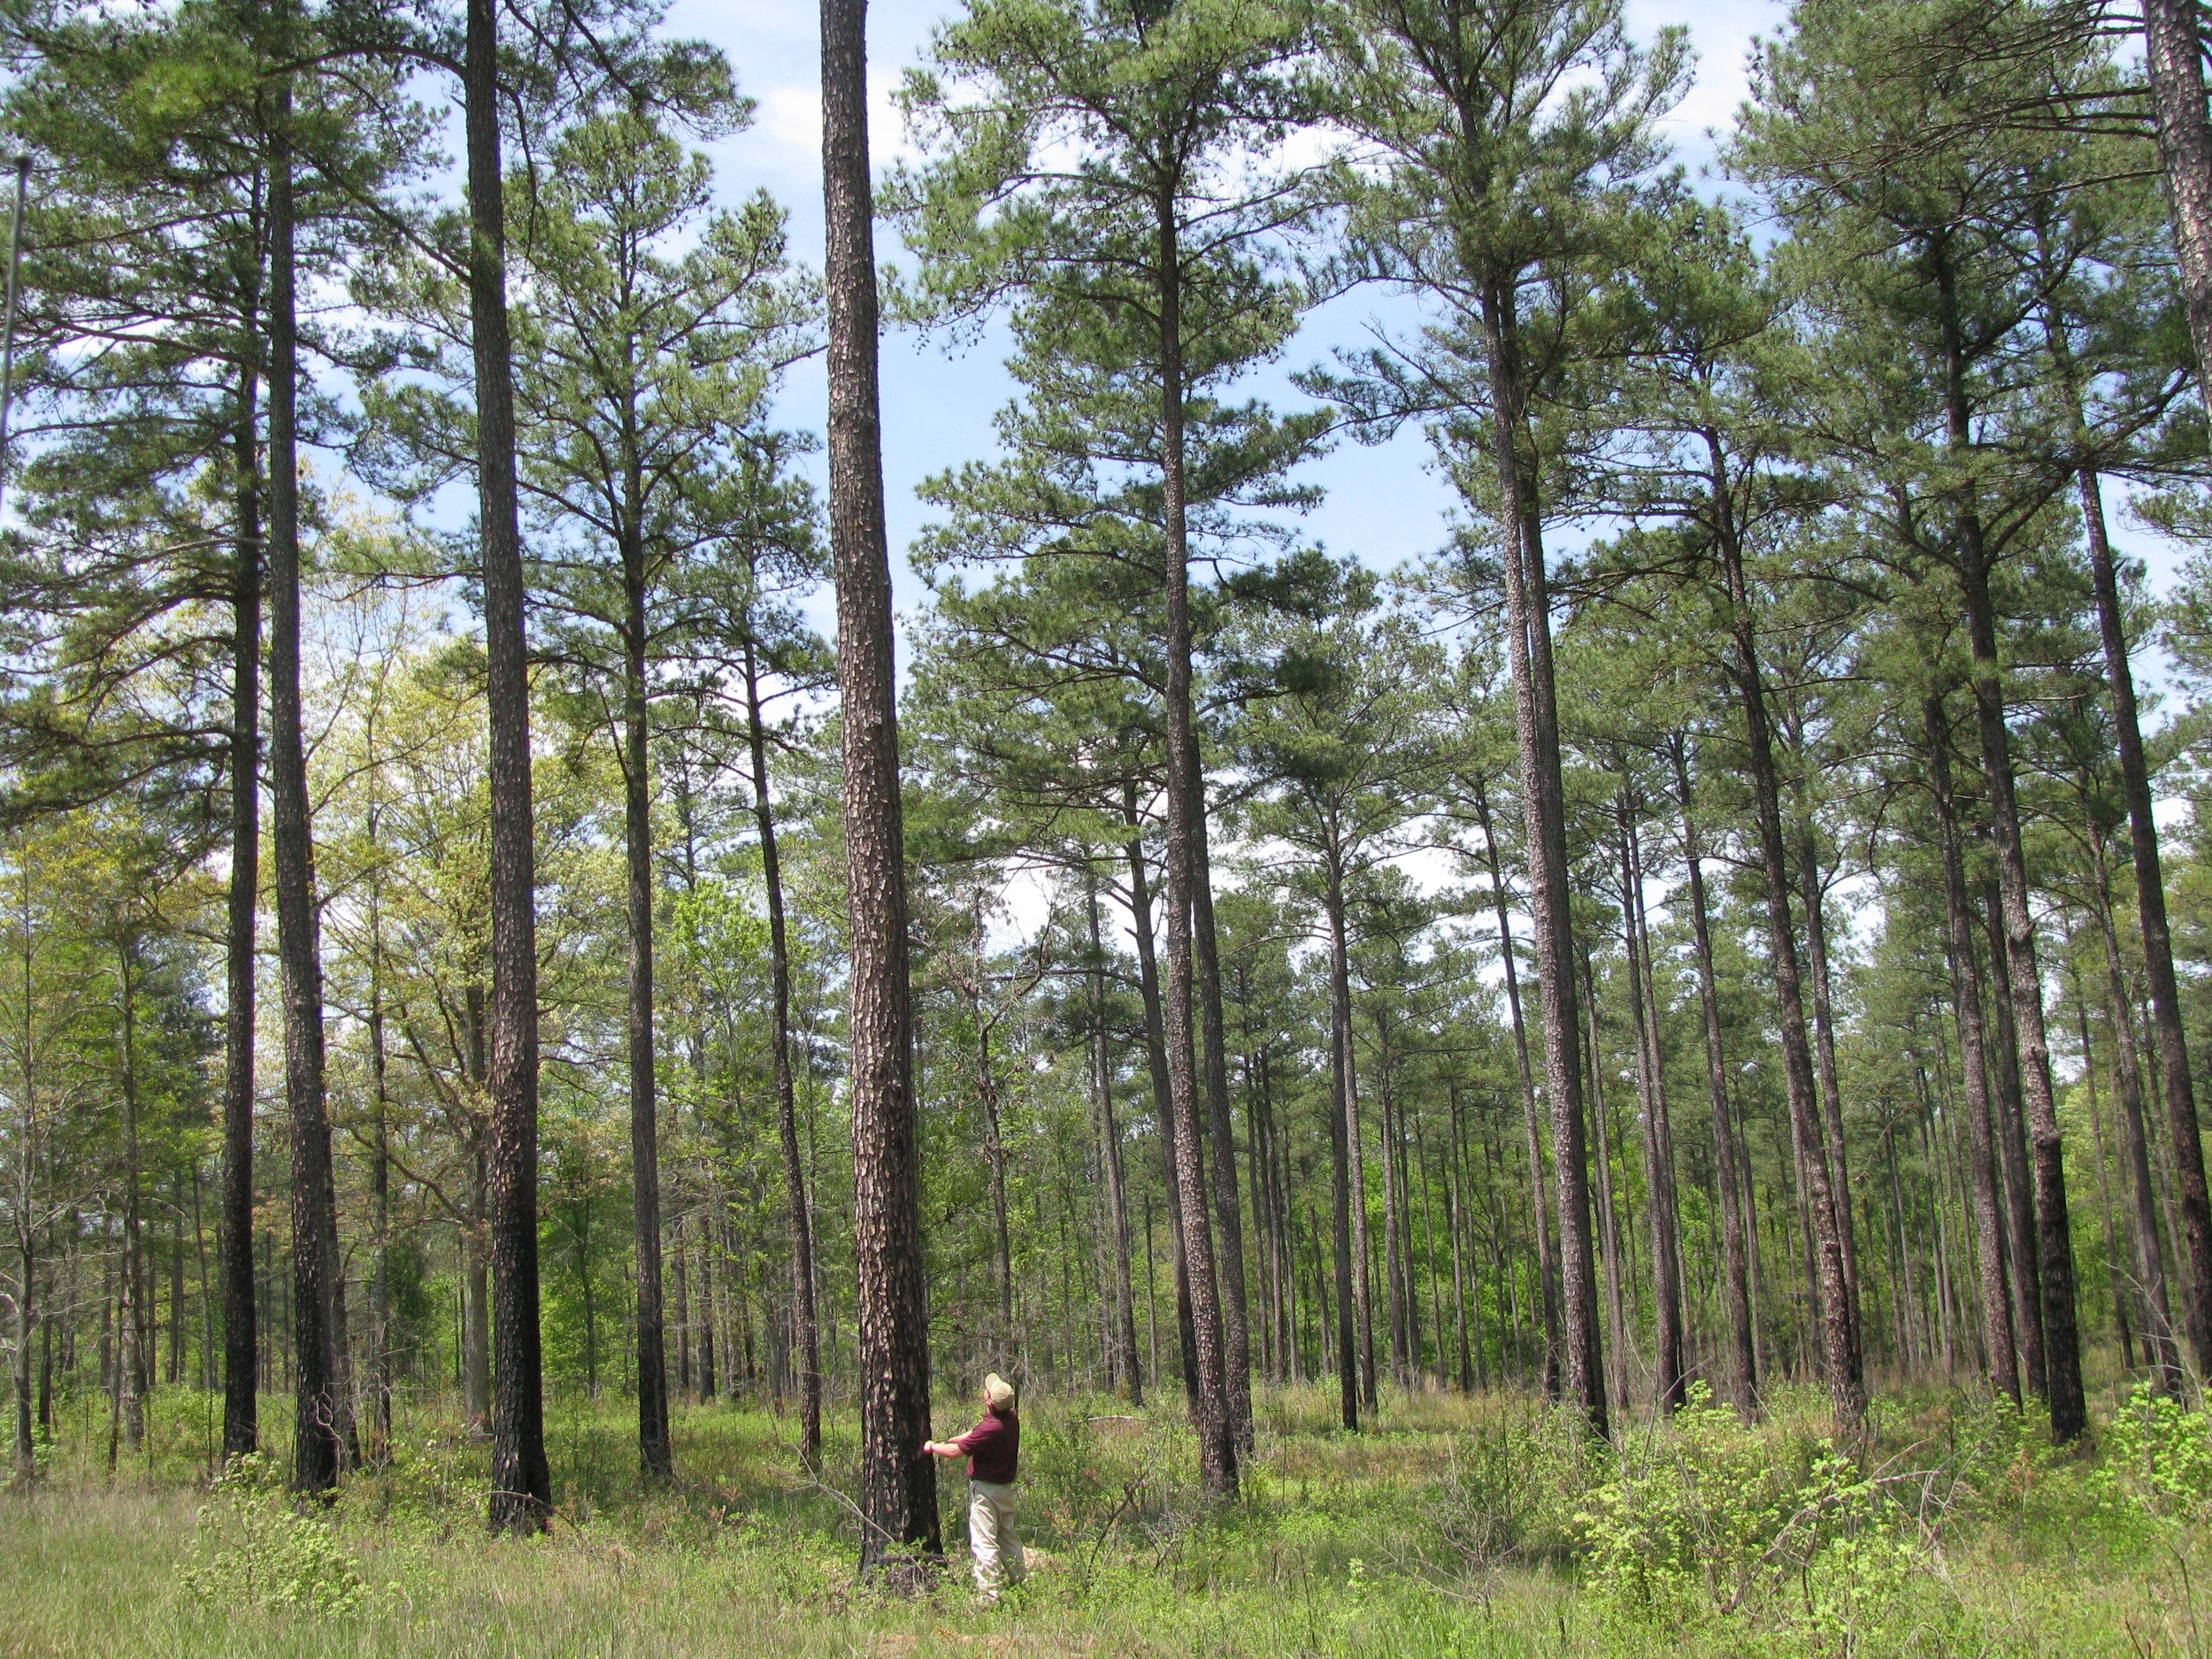 local forester manages land and timber